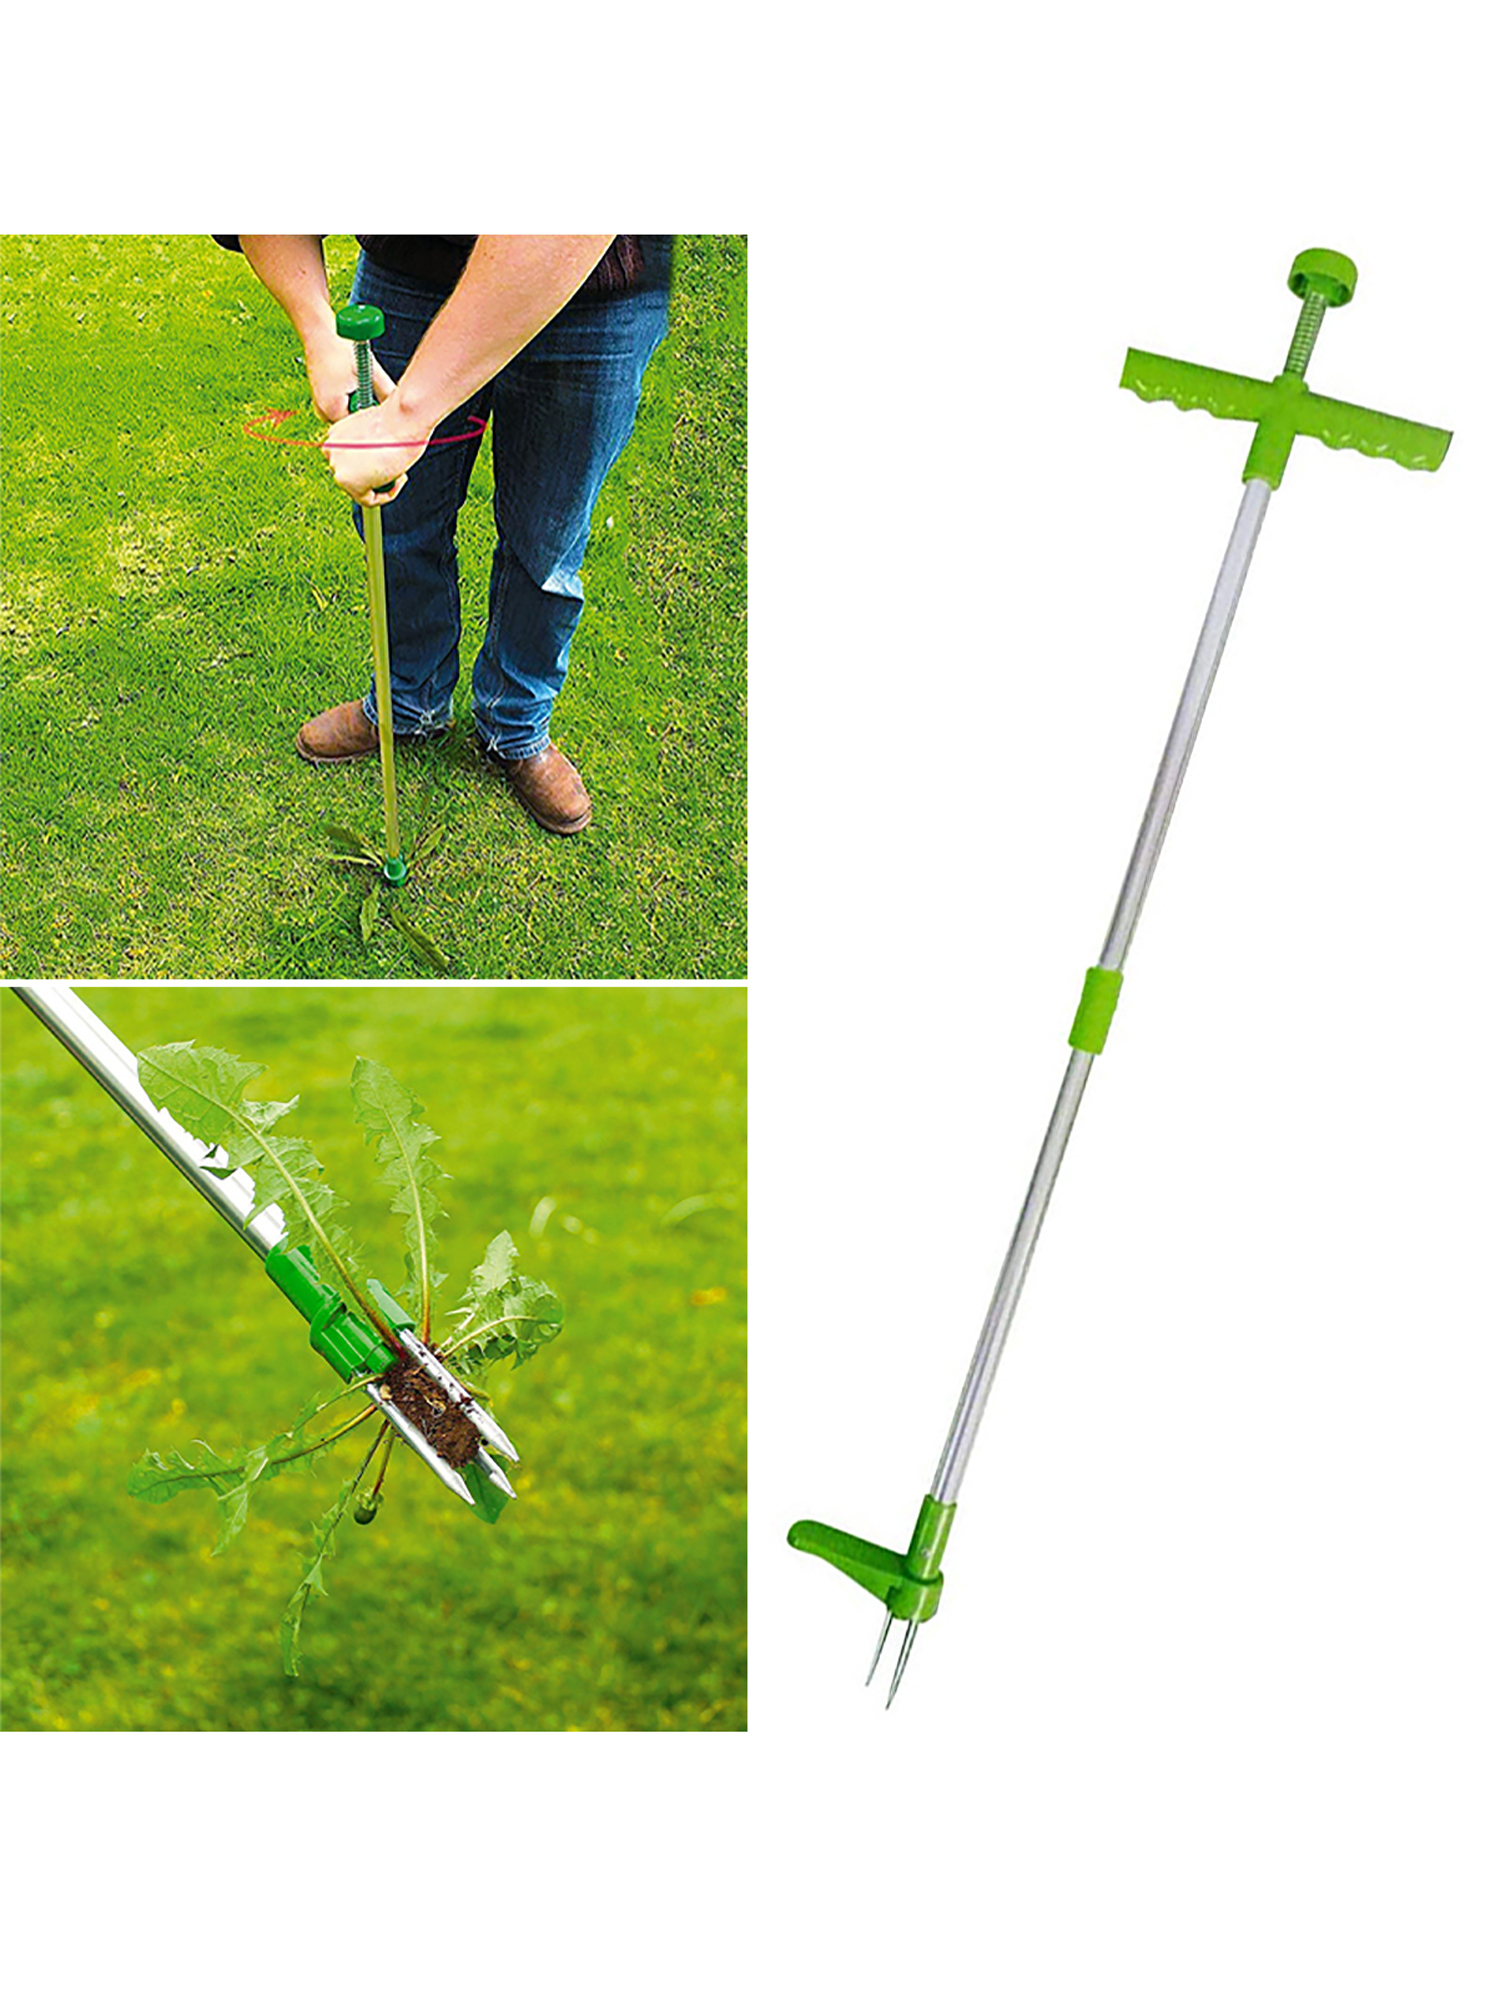 Fuyamp Steel Weed Puller Twister Claw Weed Remover Stand-Up Weeder and Root Removal Tool Garden Hand Tool Weeder